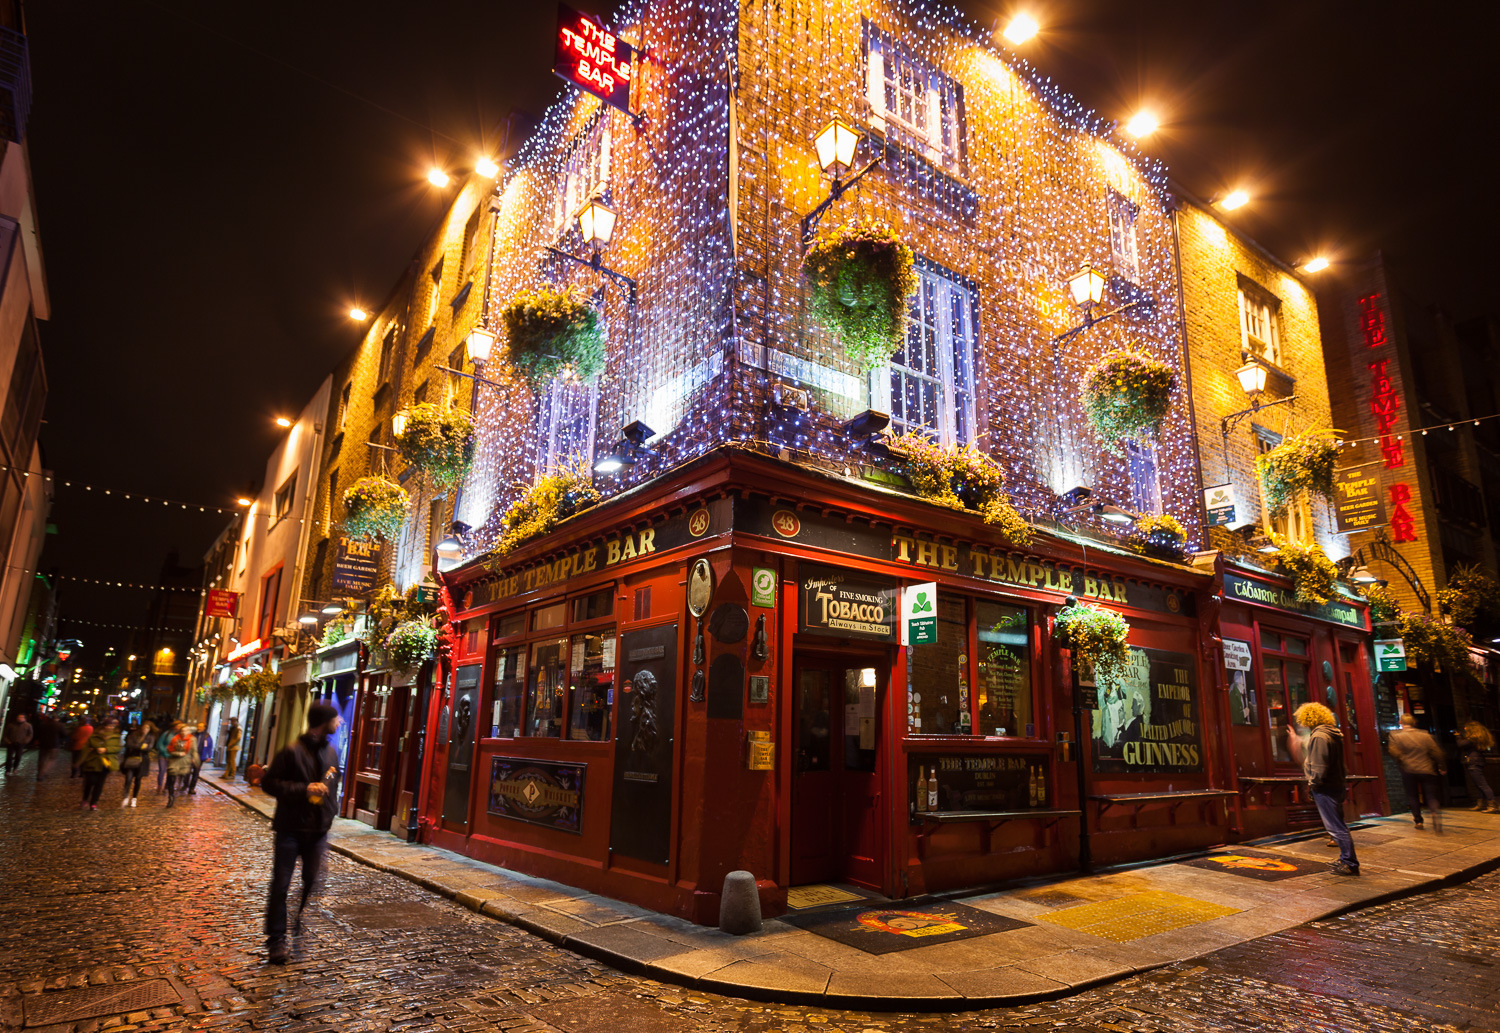 The Temple Bar, Dublino